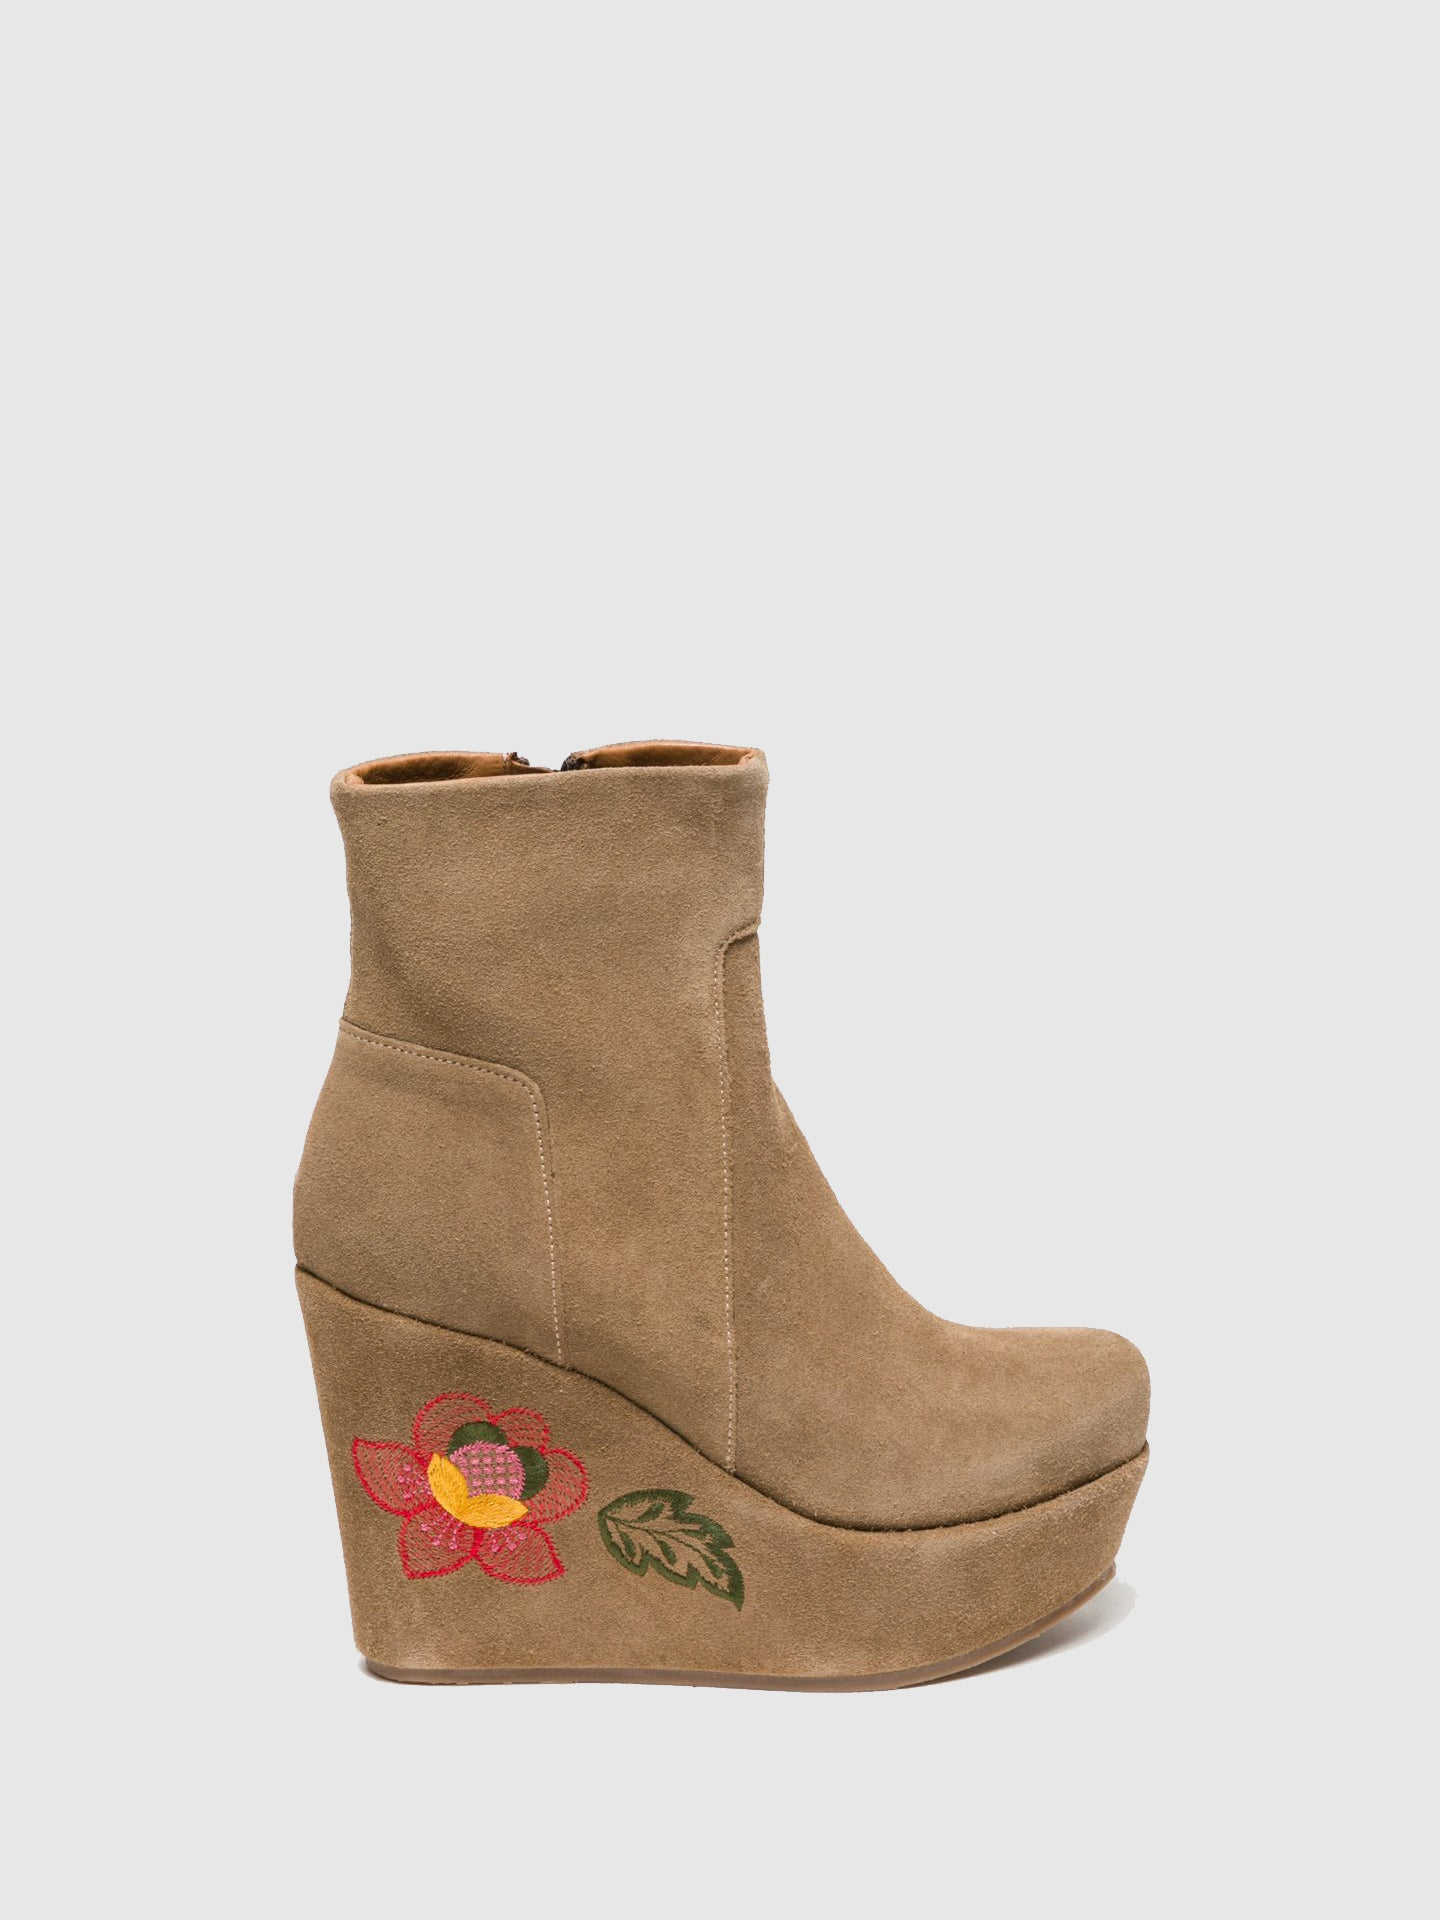 Clay's Tan Wedge Ankle Boots